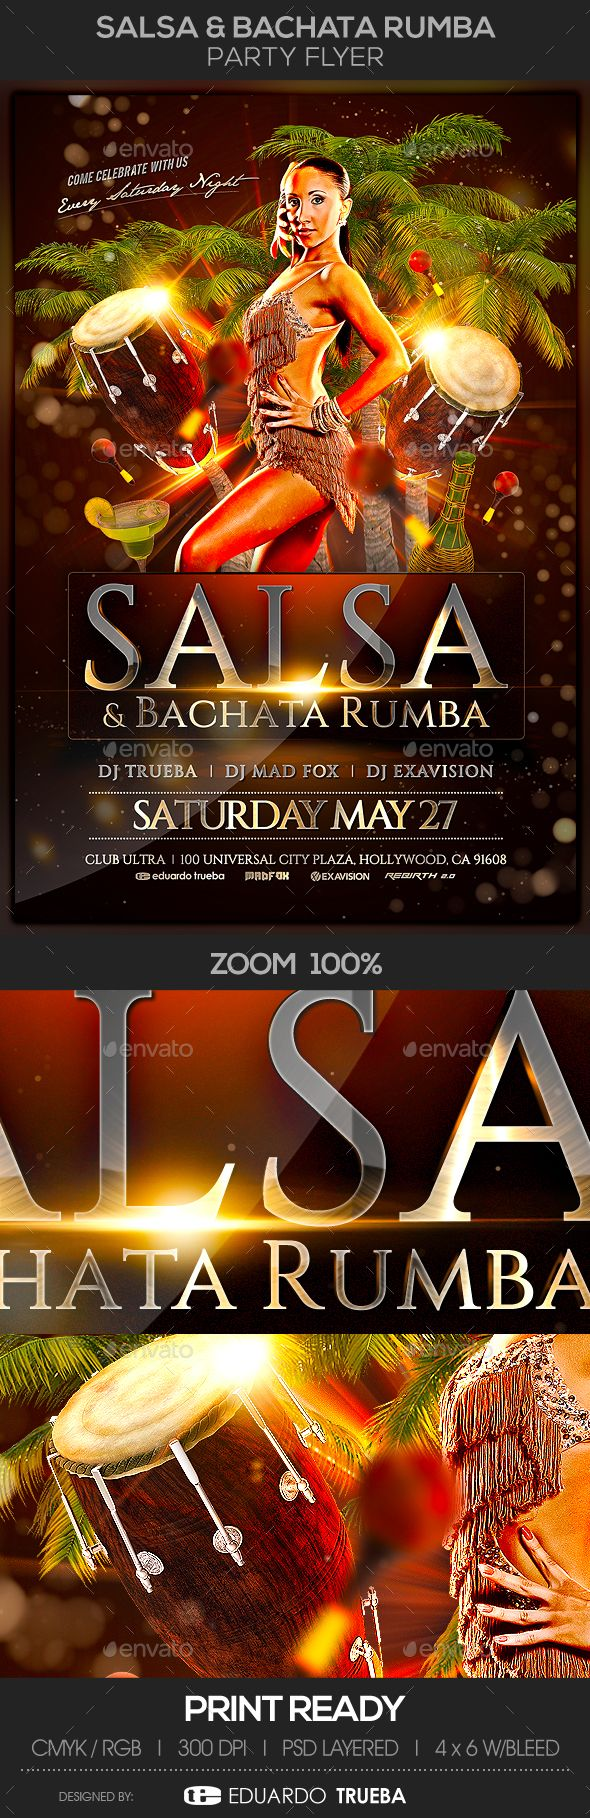 Salsa & Bachata #Rumba #Party #Flyer - Events Flyers Download here: https://graphicriver.net/item/salsa-bachata-rumba-party-flyer/19594121?ref=alena994